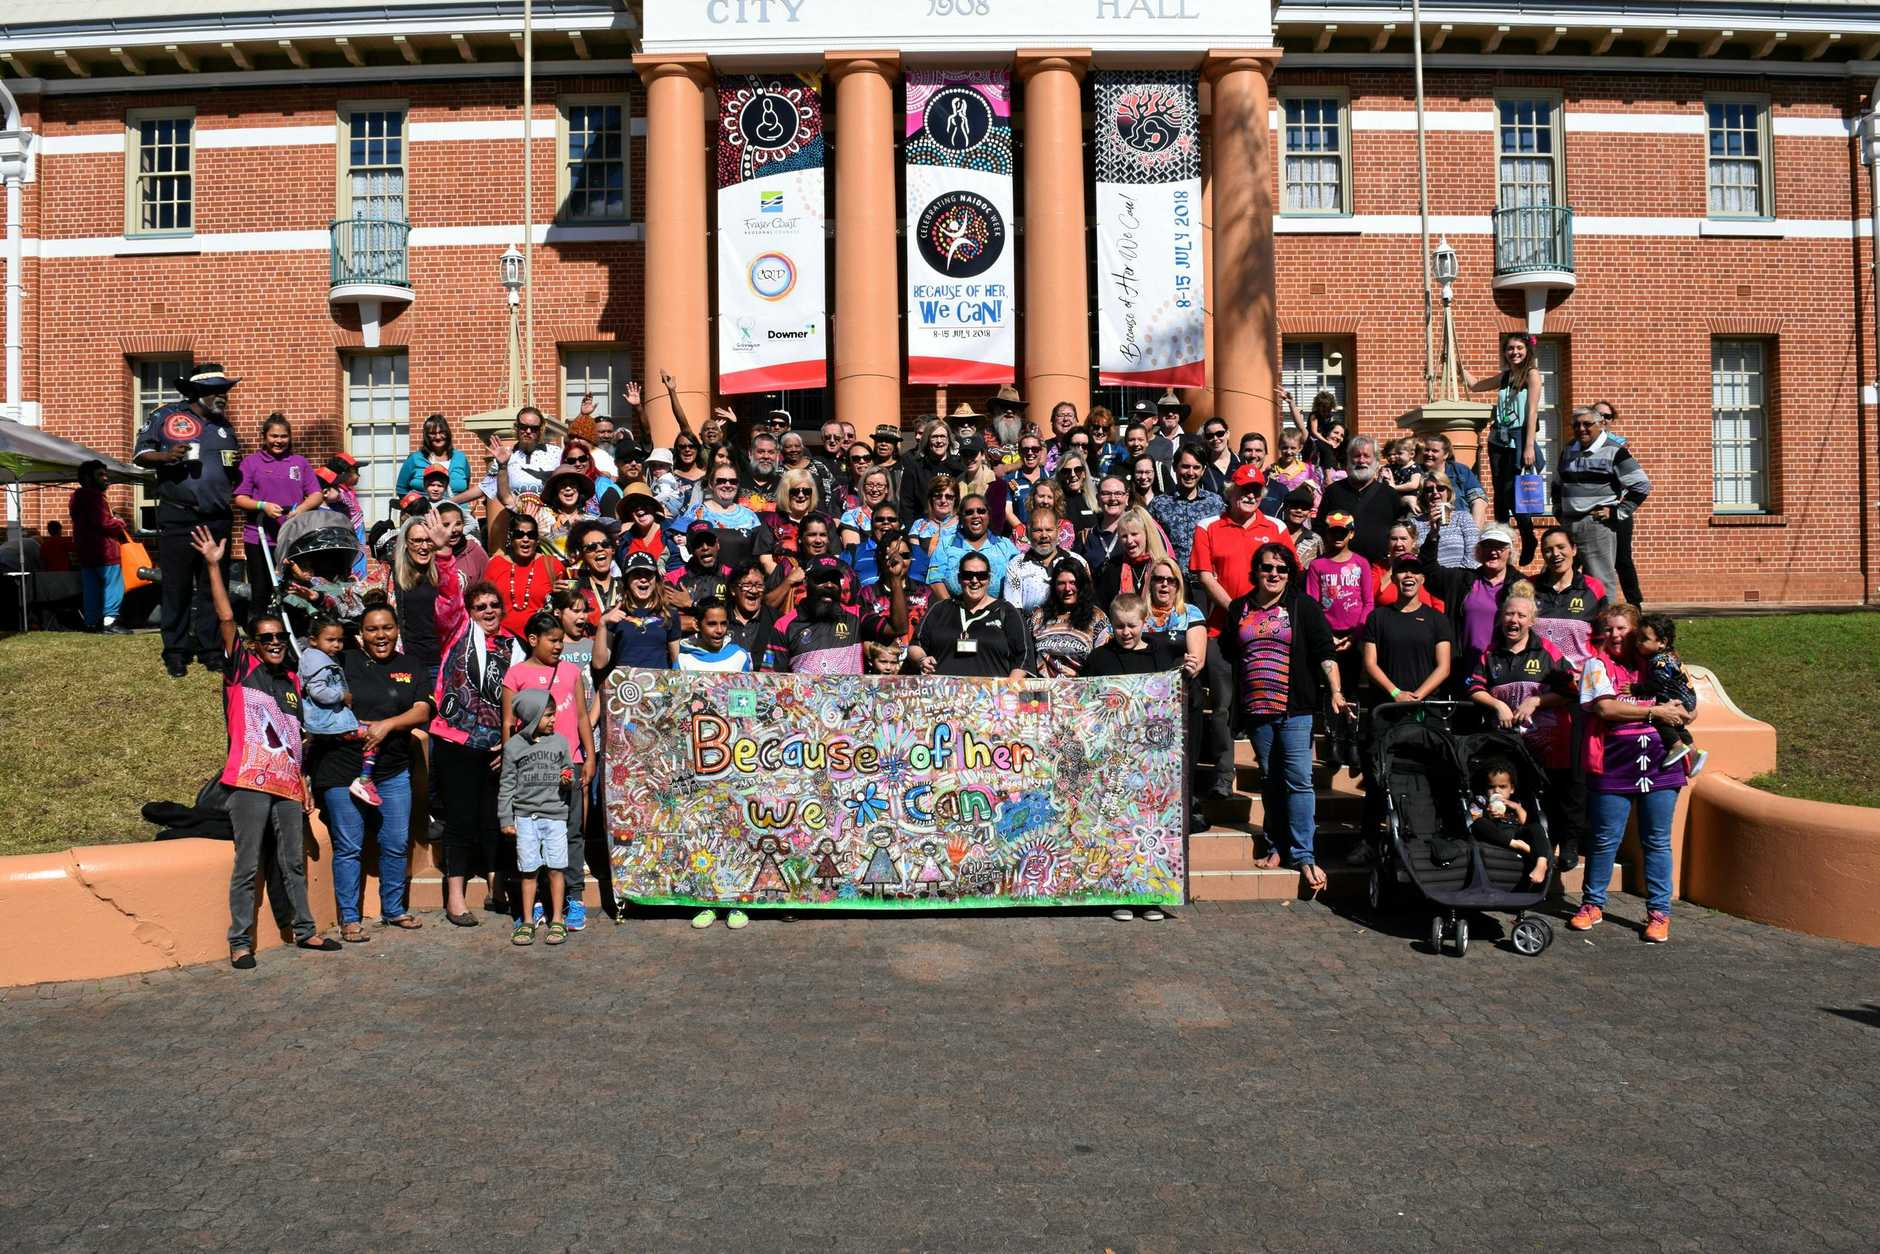 Everyone was invited to be part of an annual tradition of the Naidoc Week celebrations photo in front of the Maryborough City Hall.